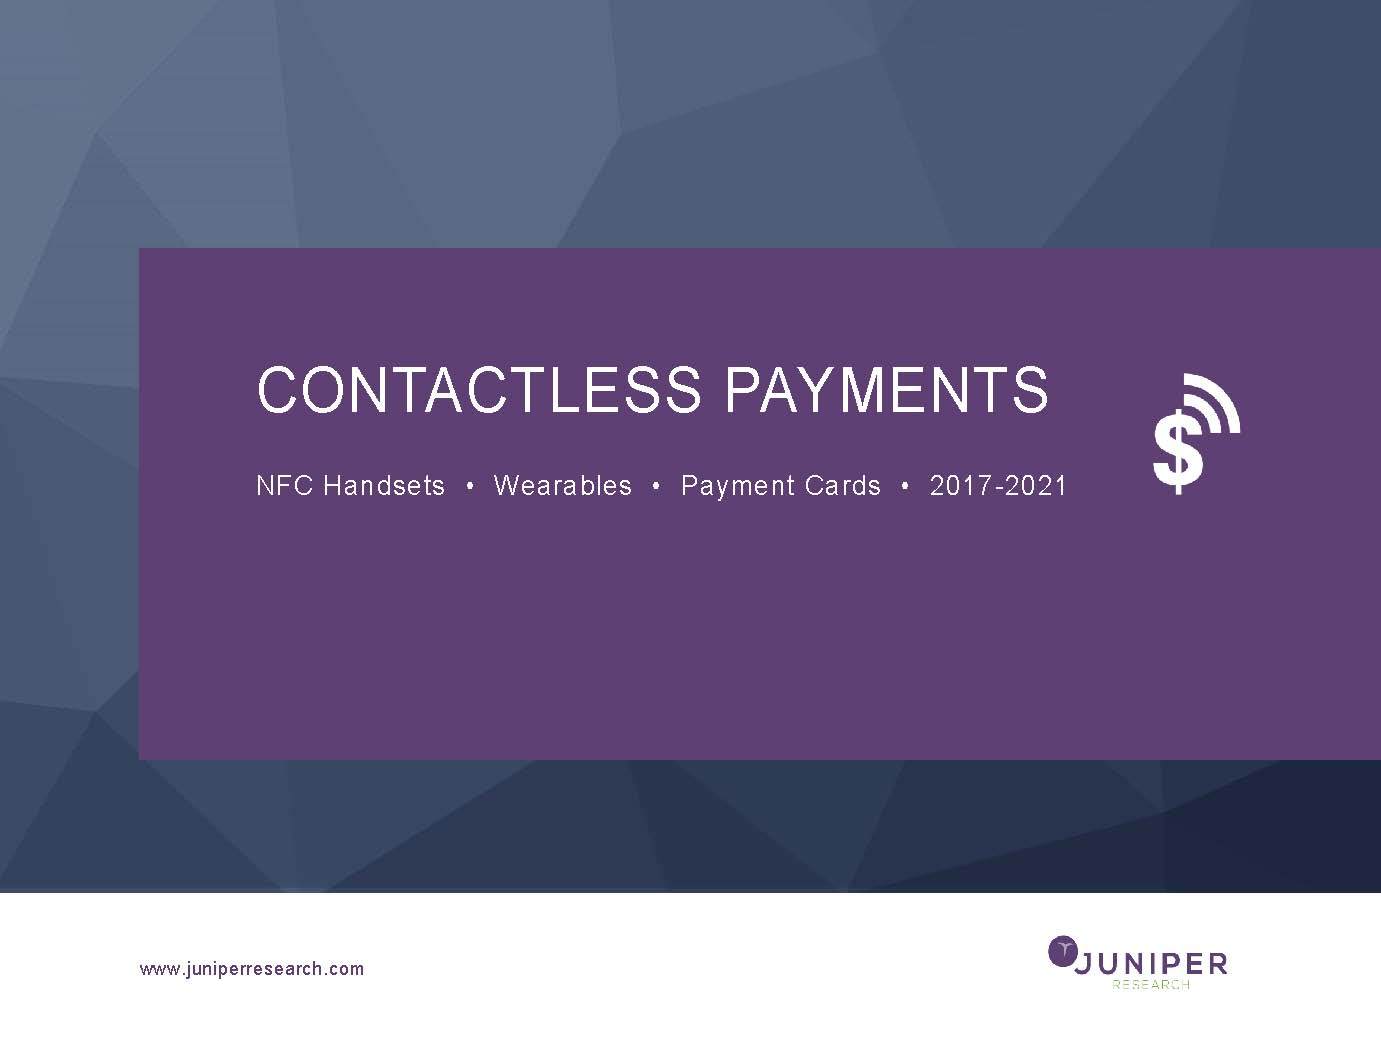 Contactless Payments - Executive Summary & Core Findings 2017 - 2021